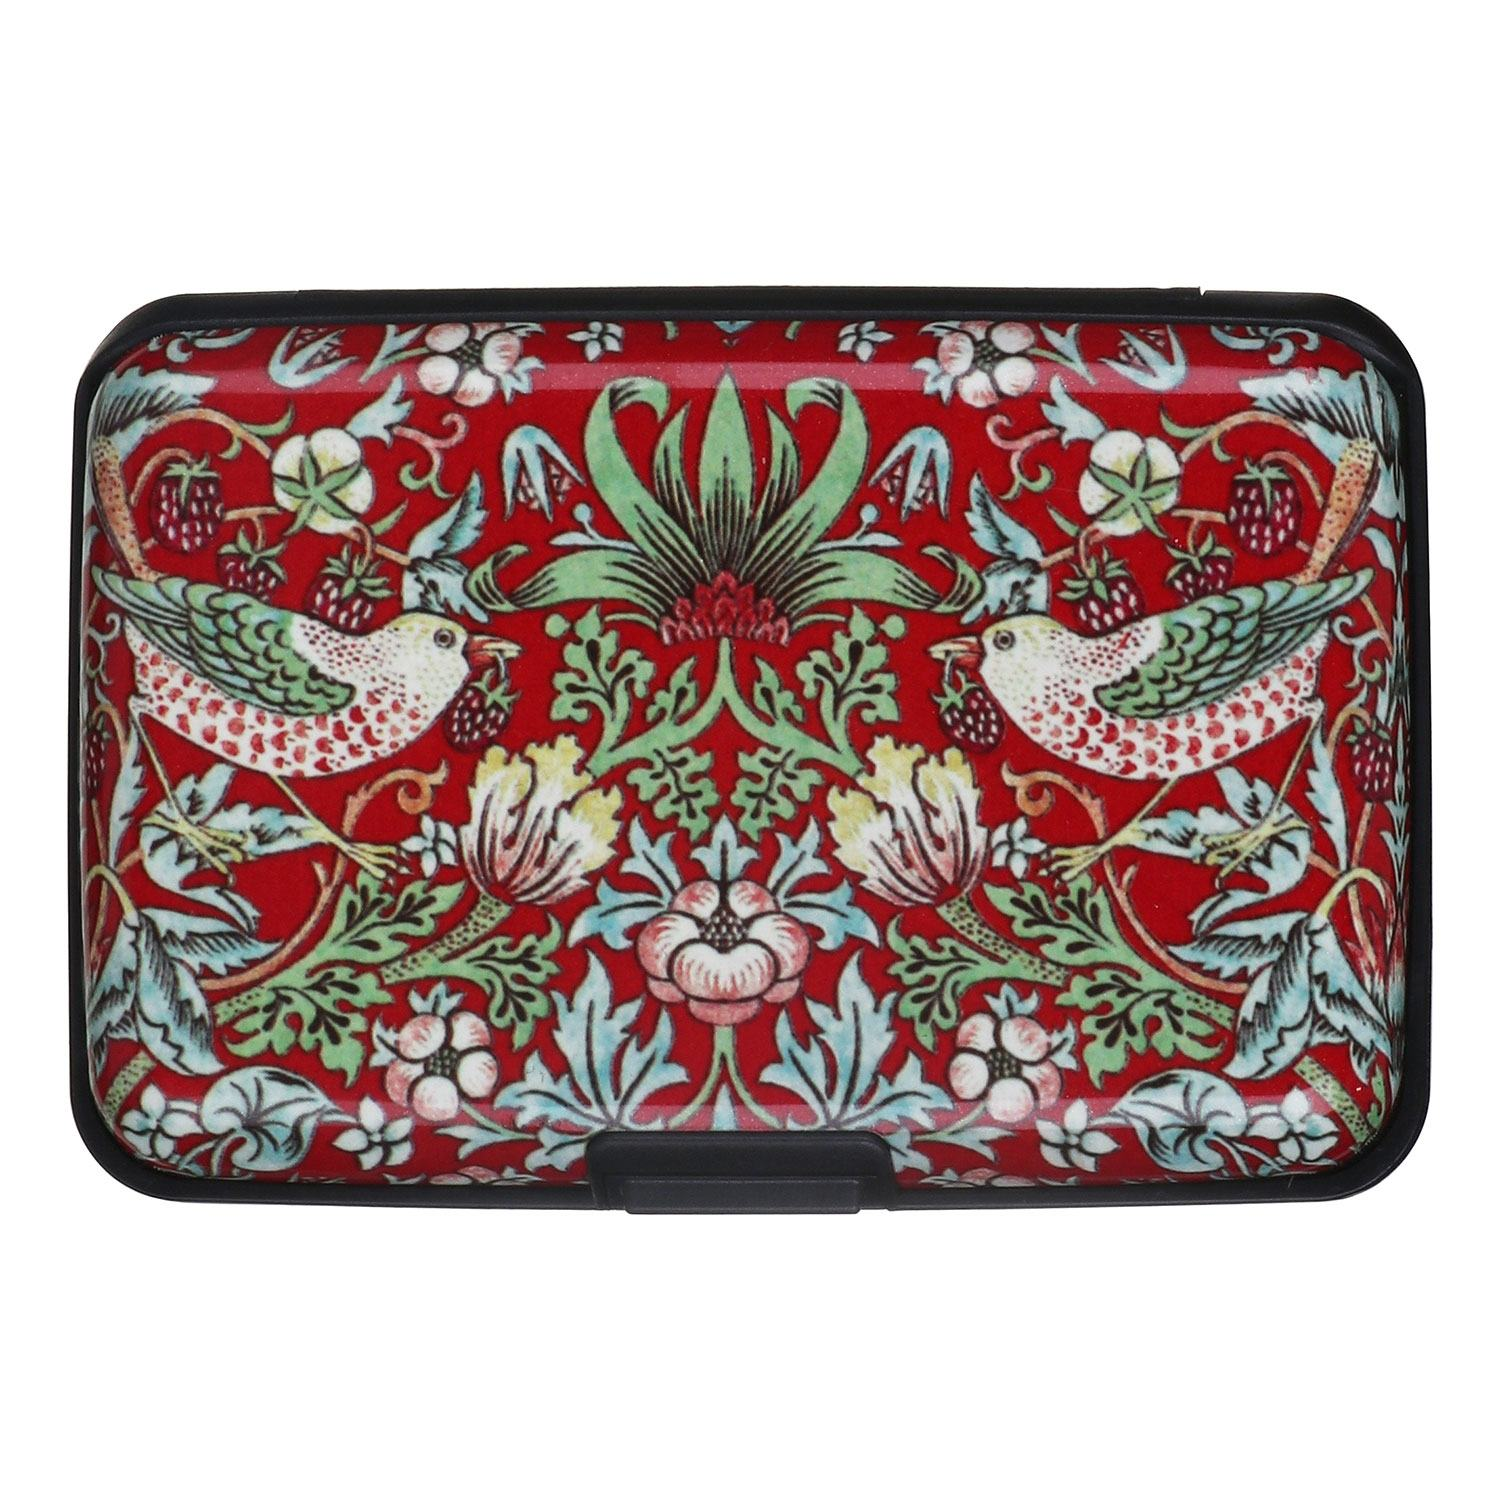 William Morris Credit Card Protector Temptation Gifts